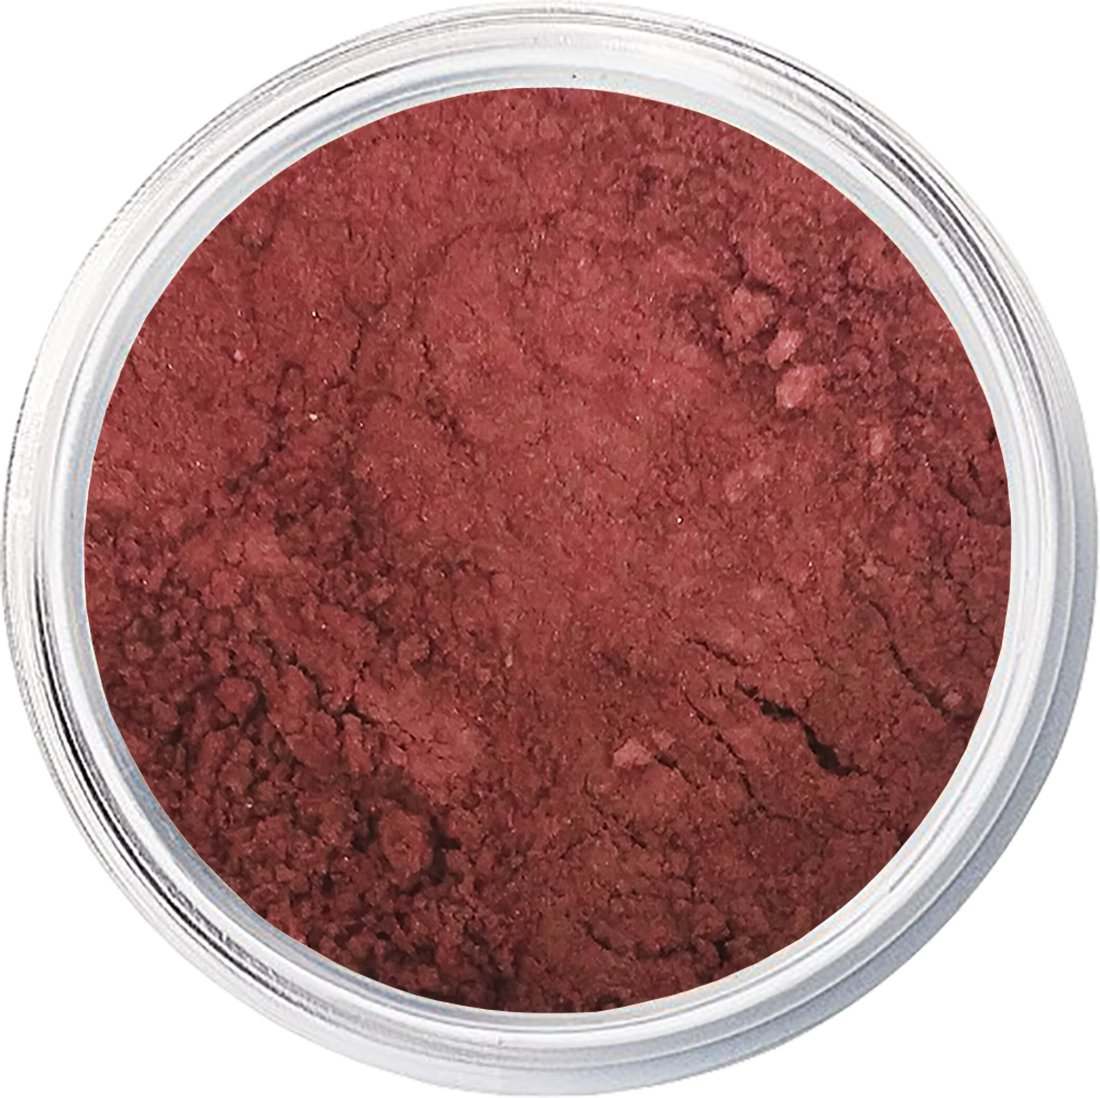 Blush Makeup | Red Hawaii | Mineral Makeup by Giselle Cosmetics | Pure, Non-Diluted Mineral Make Up